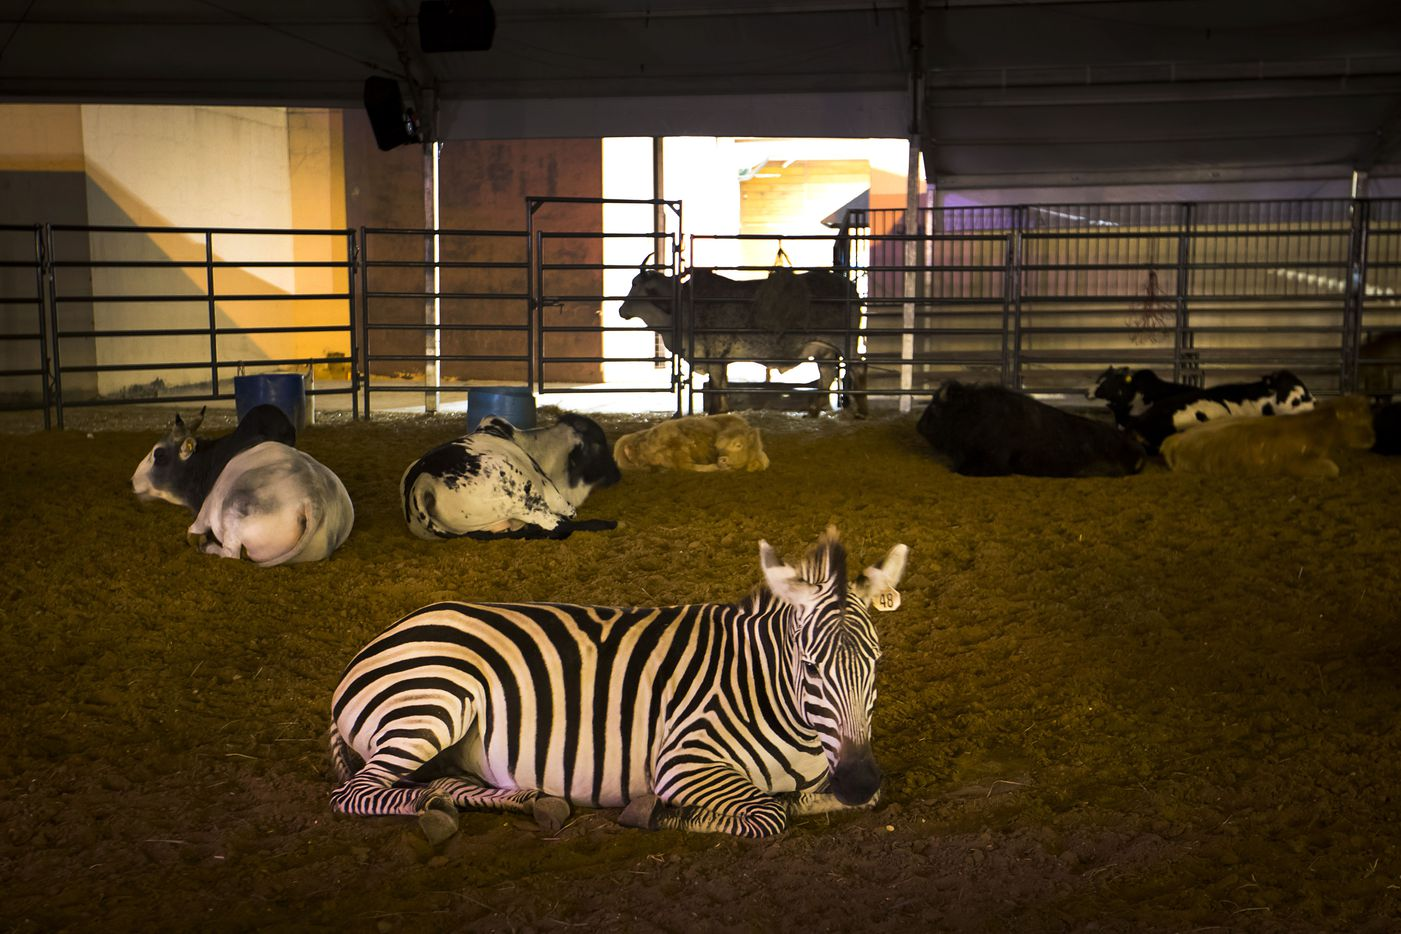 A zebra rests with other animals in a dark and quiet arena at the State Fair of Texas after closing.